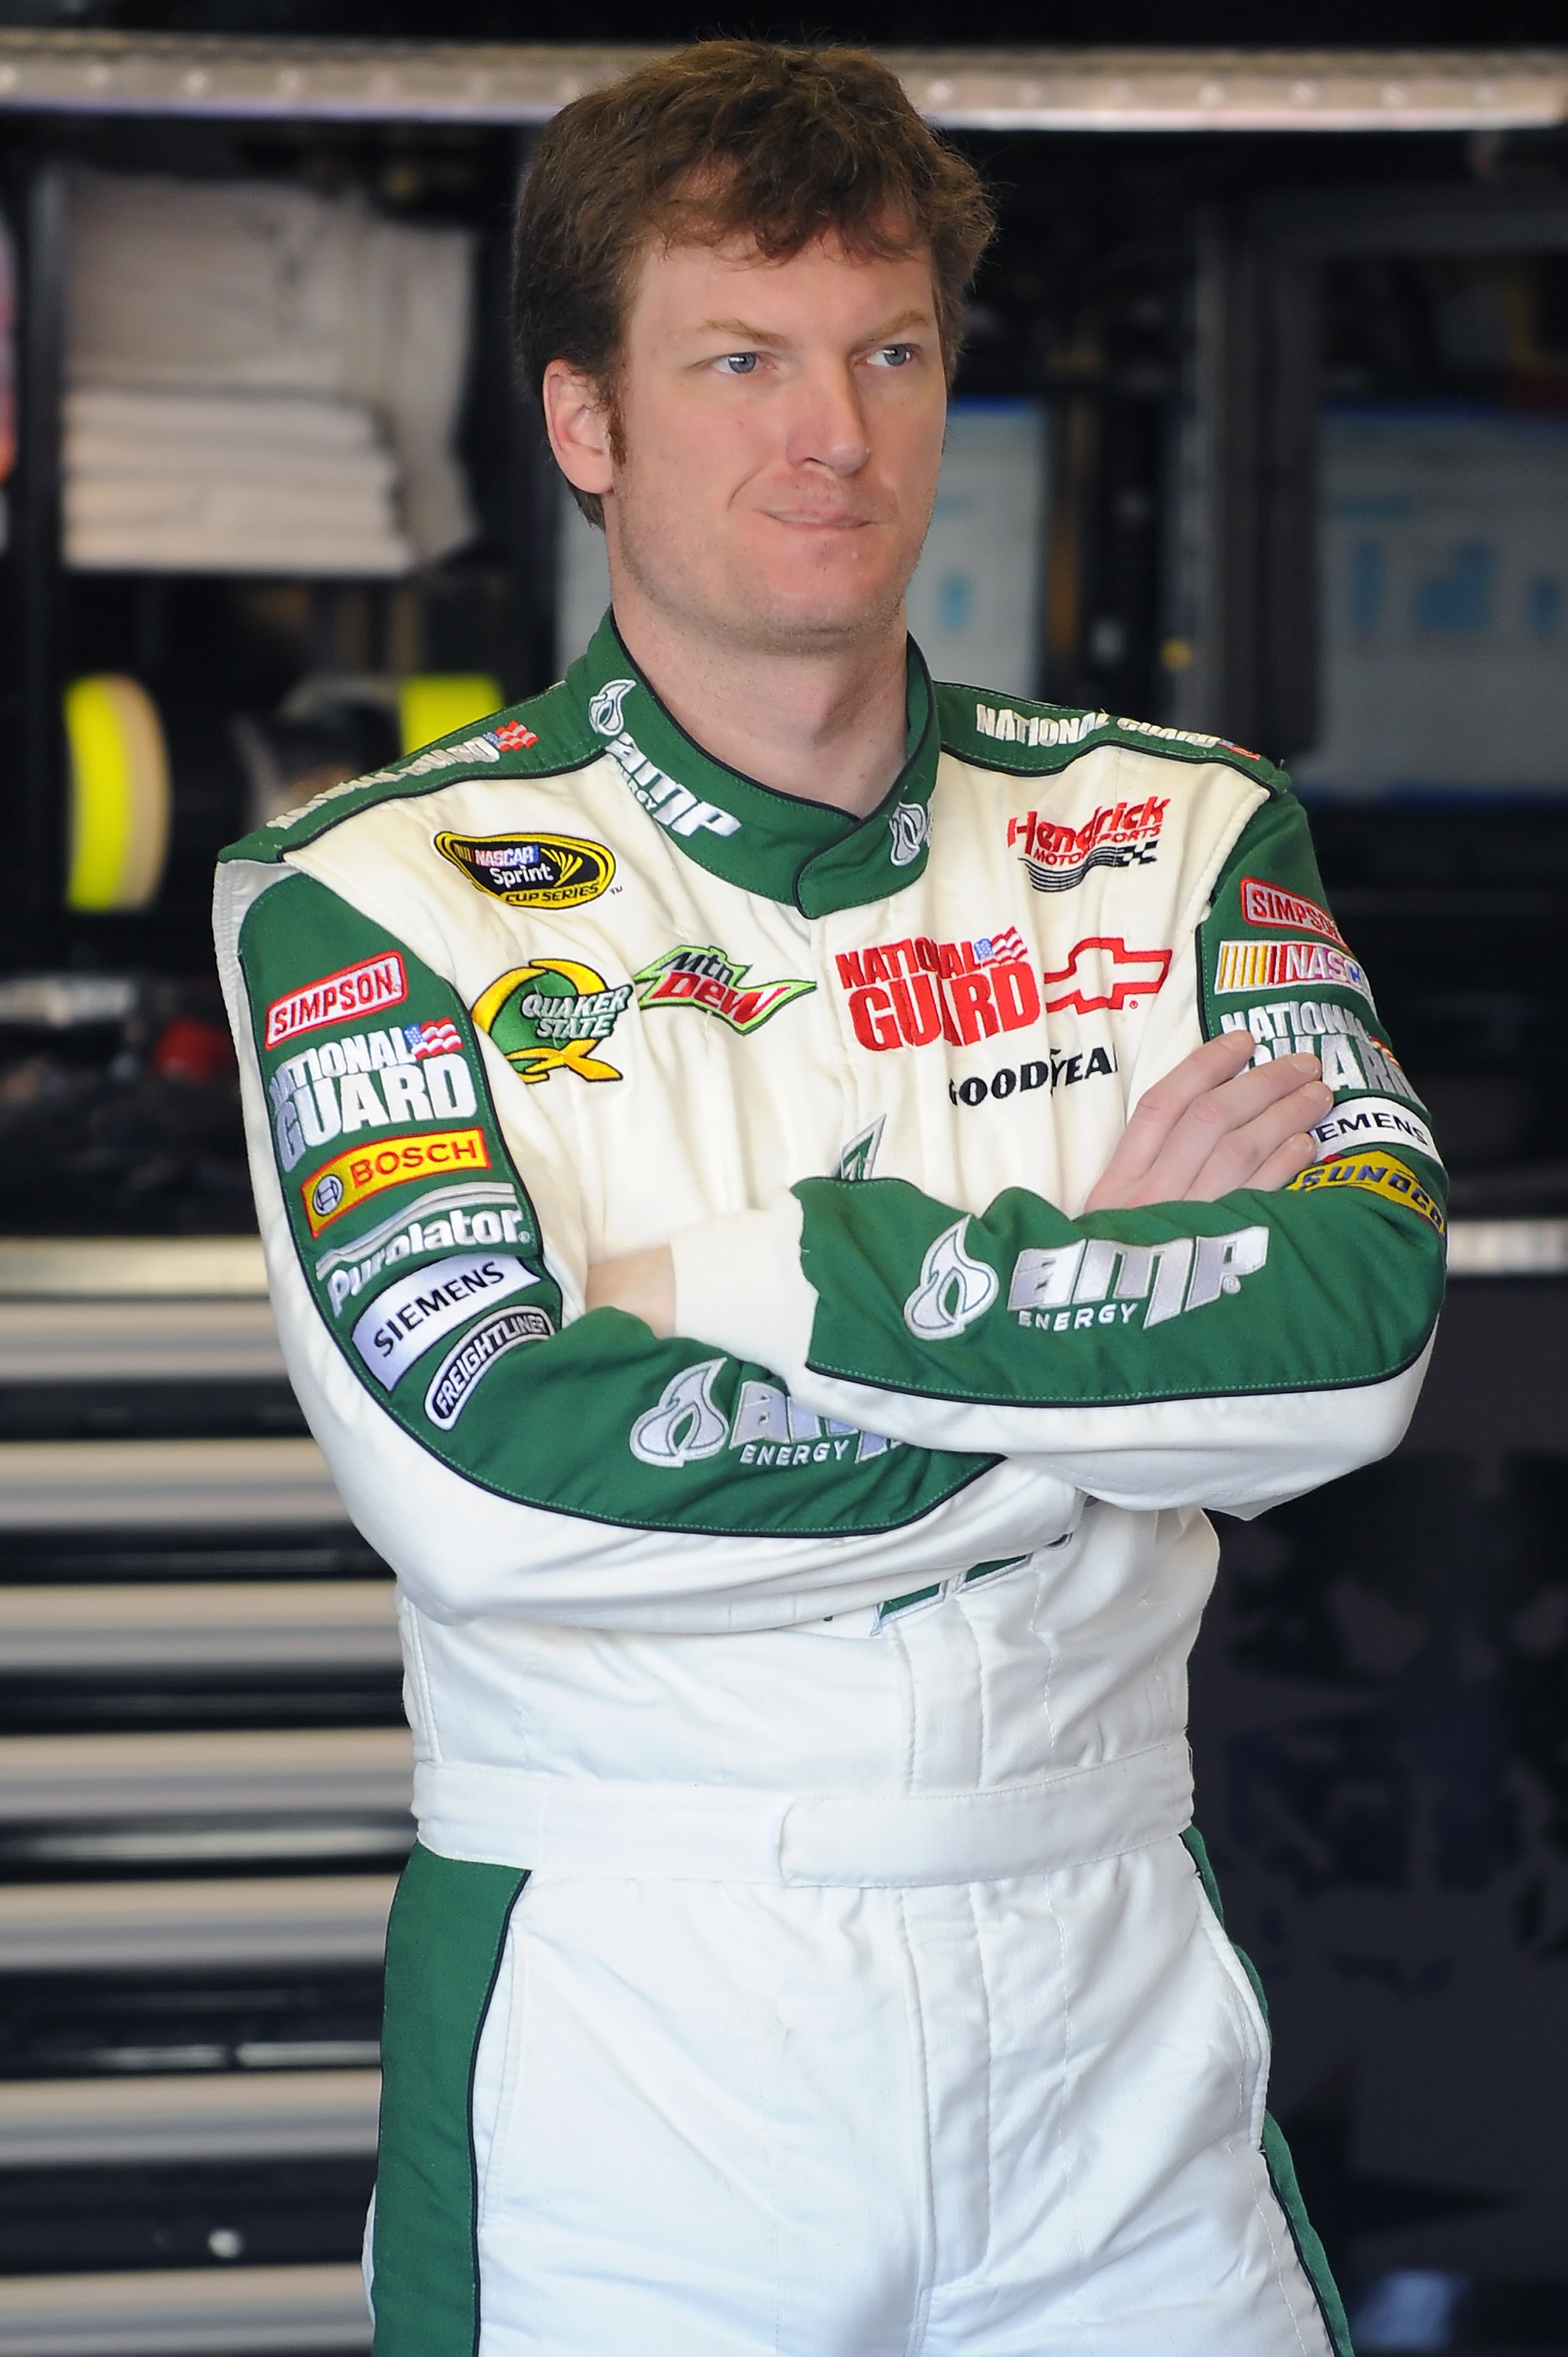 DAYTONA BEACH, FL - JANUARY 20:  Dale Earnhardt Jr., driver of the #88 AMP Energy Chevrolet, waits to continue testing at Daytona International Speedway on January 20, 2011 in Daytona Beach, Florida.  (Photo by Jared C. Tilton/Getty Images for NASCAR)